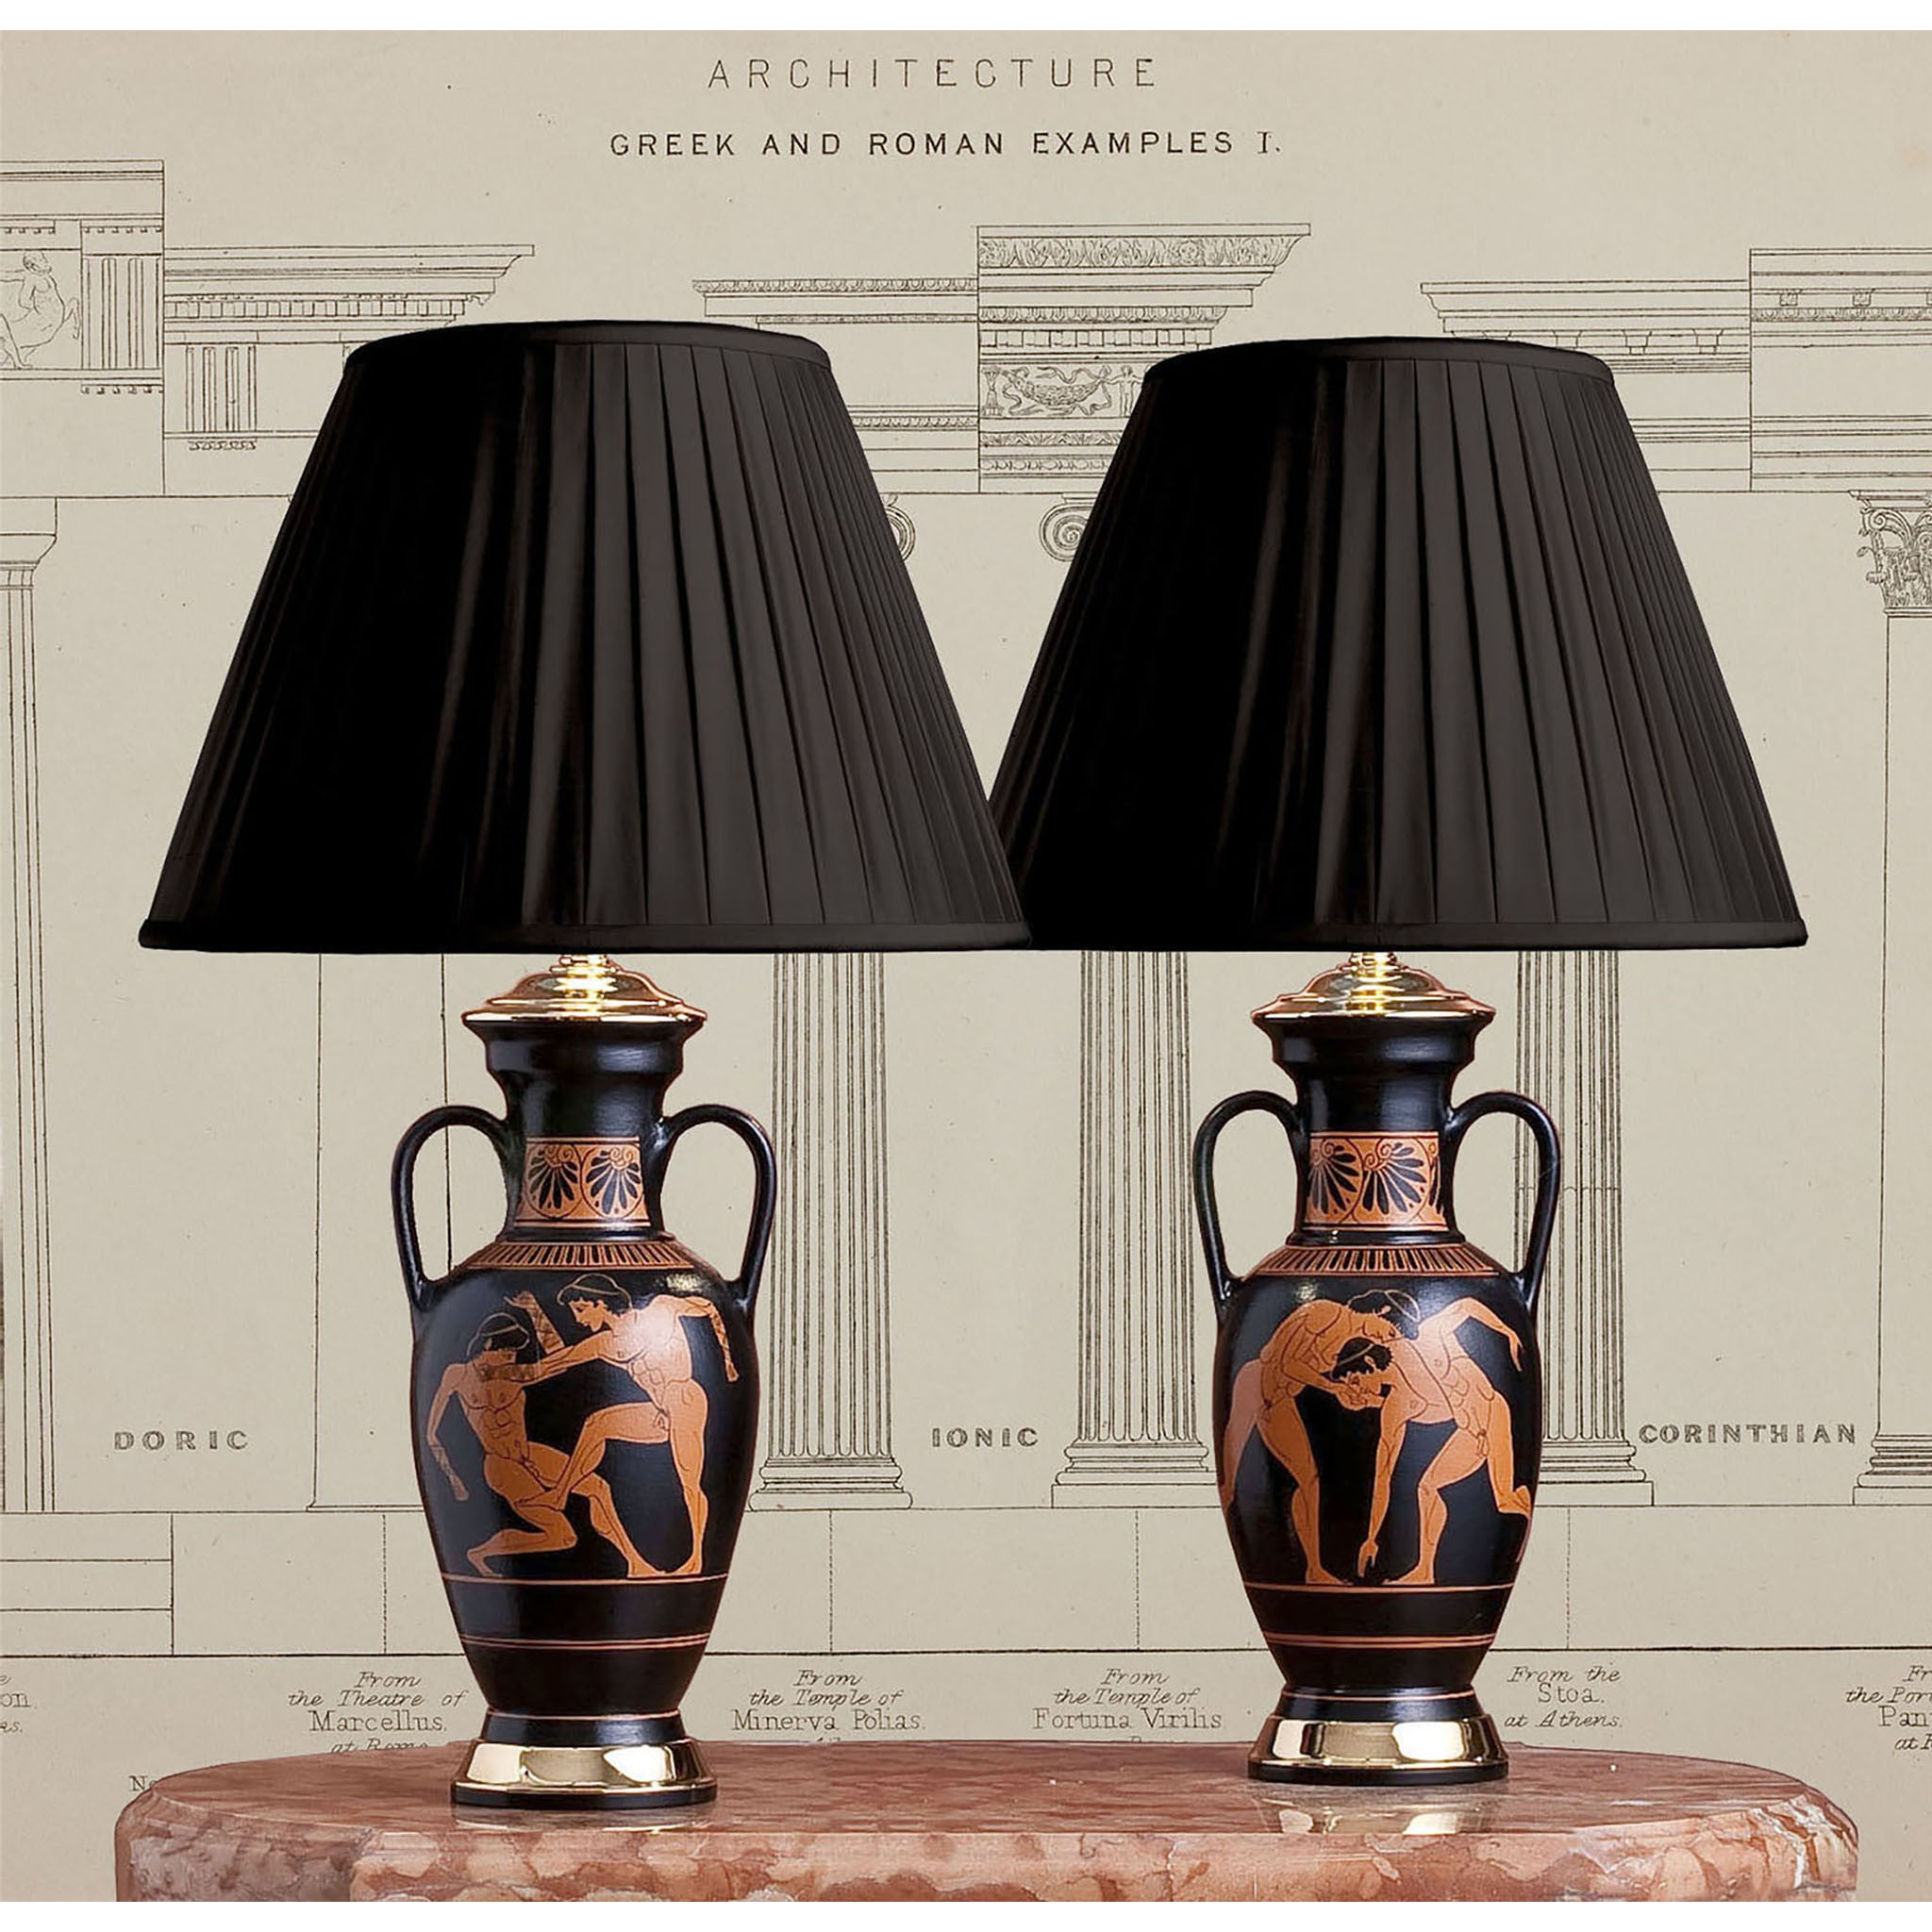 E062 A Very Smart Pair Of Contemporary Lamps In Classical Greek Amphora Style